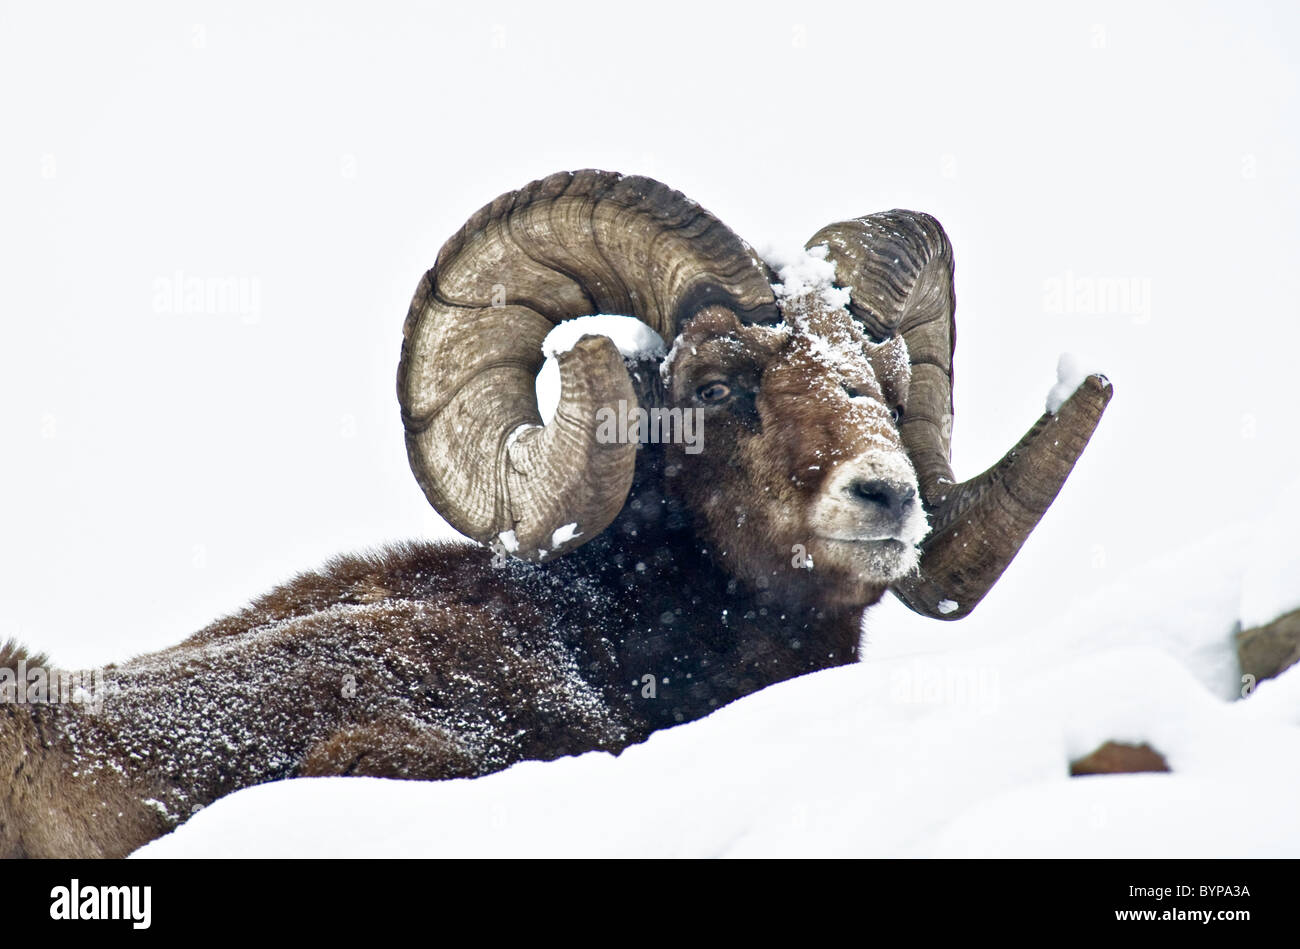 A Bighorn Sheep in the deep snow. - Stock Image